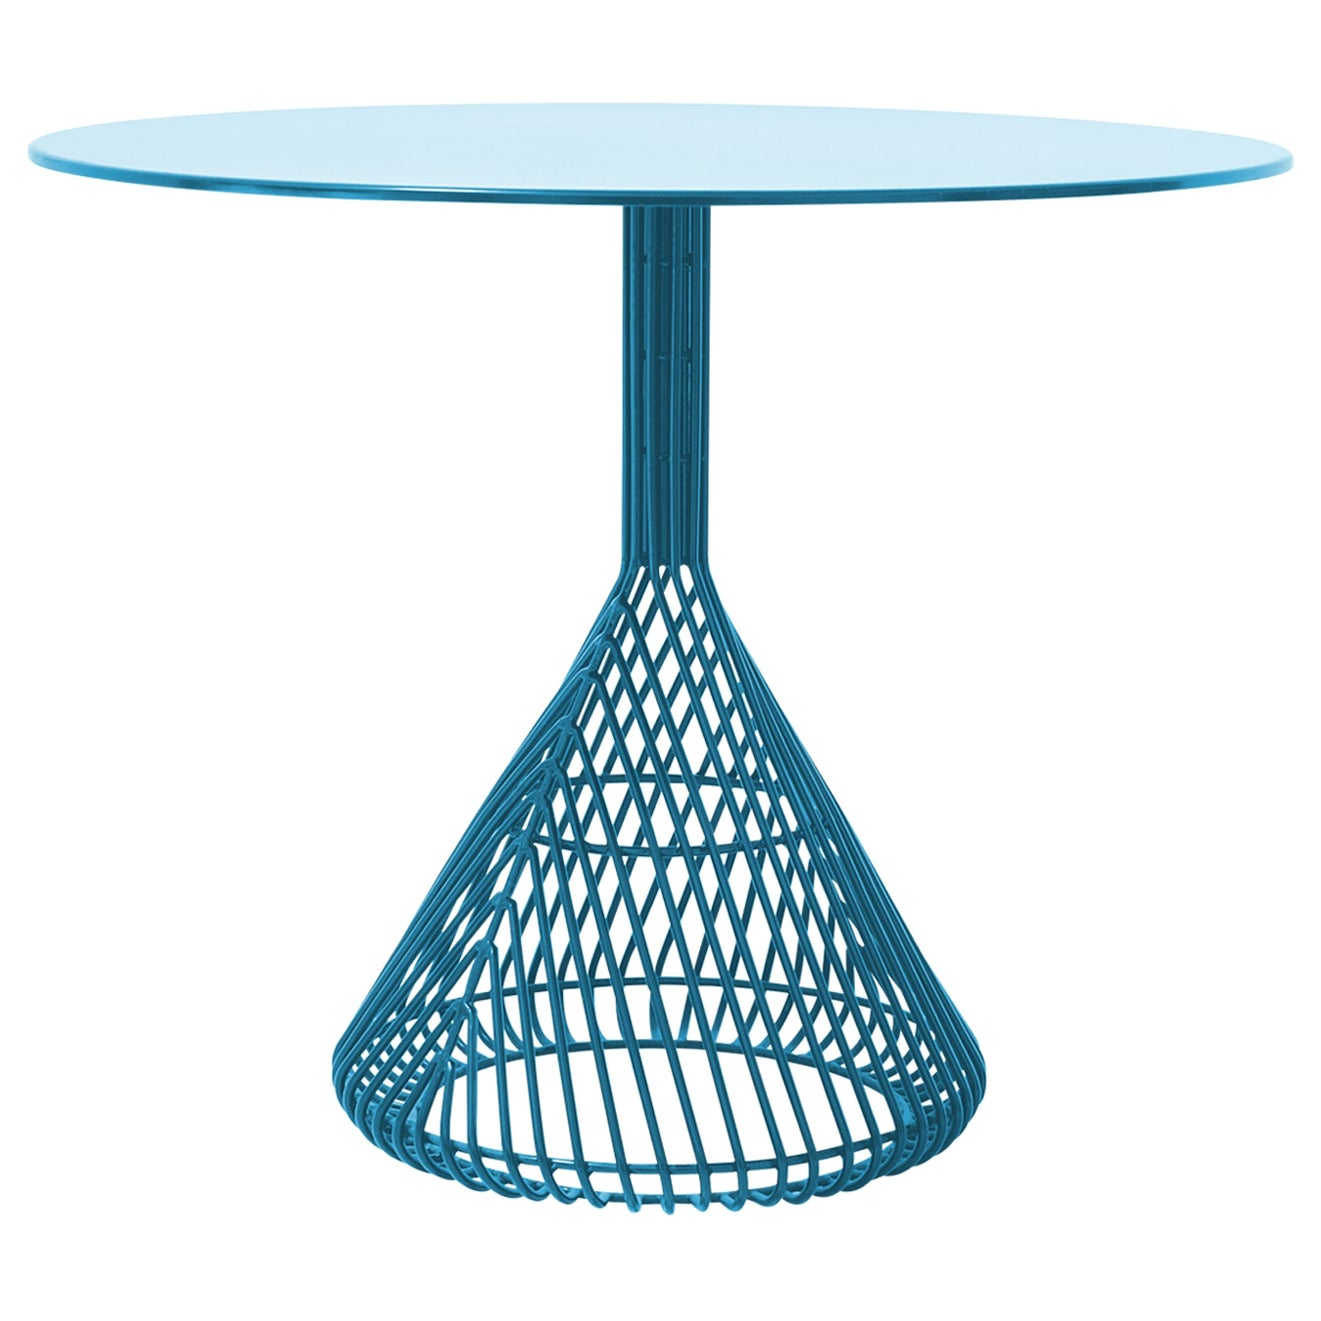 Modern Bistro Table, Wire Dining Table in Peacock Blue with Metal Top